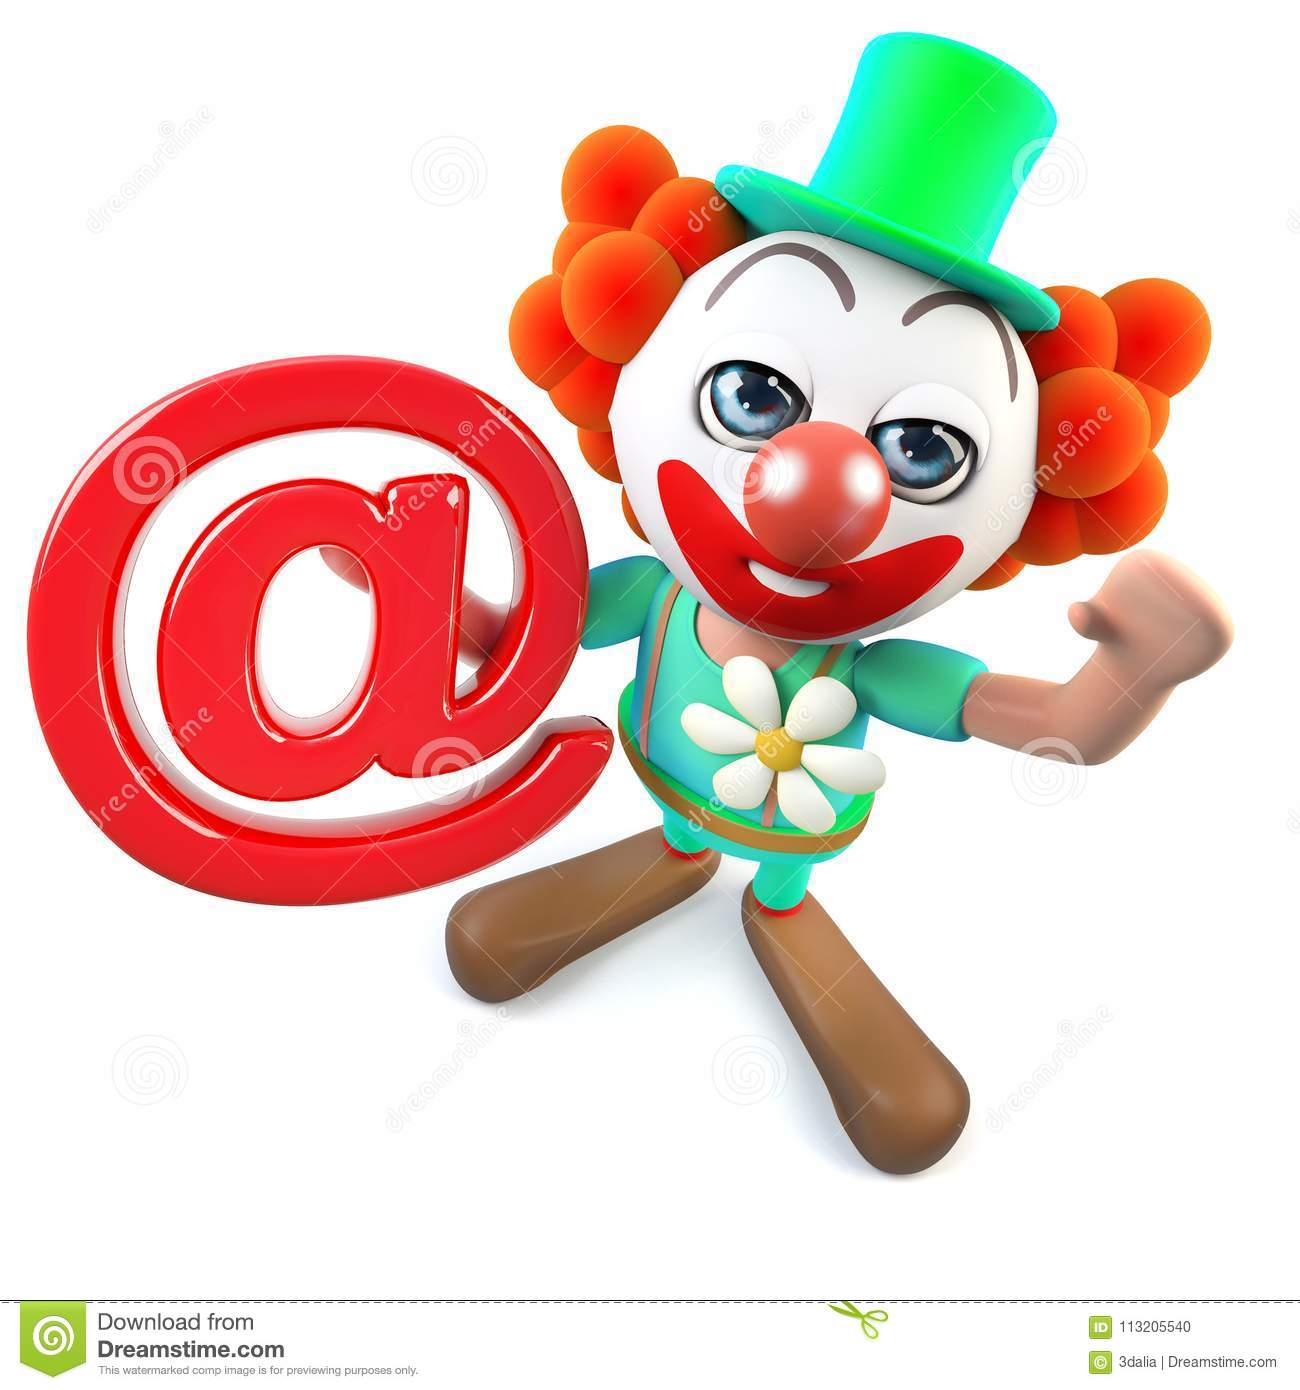 3d Funny Cartoon Crazy Clown Character Holding An Email Address